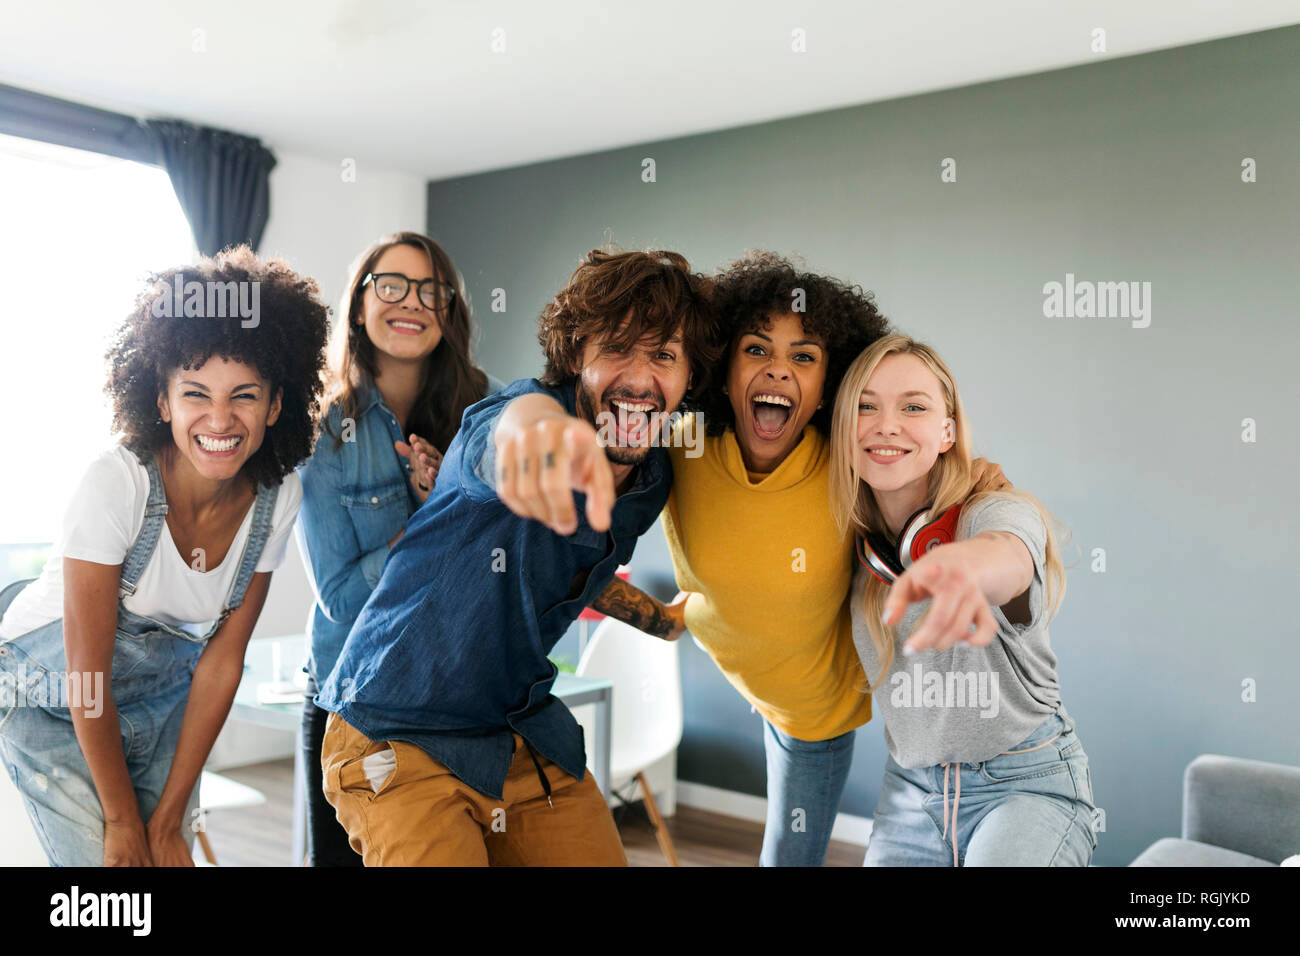 Portrait of cheerful friends at home with man and woman pointing finger - Stock Image